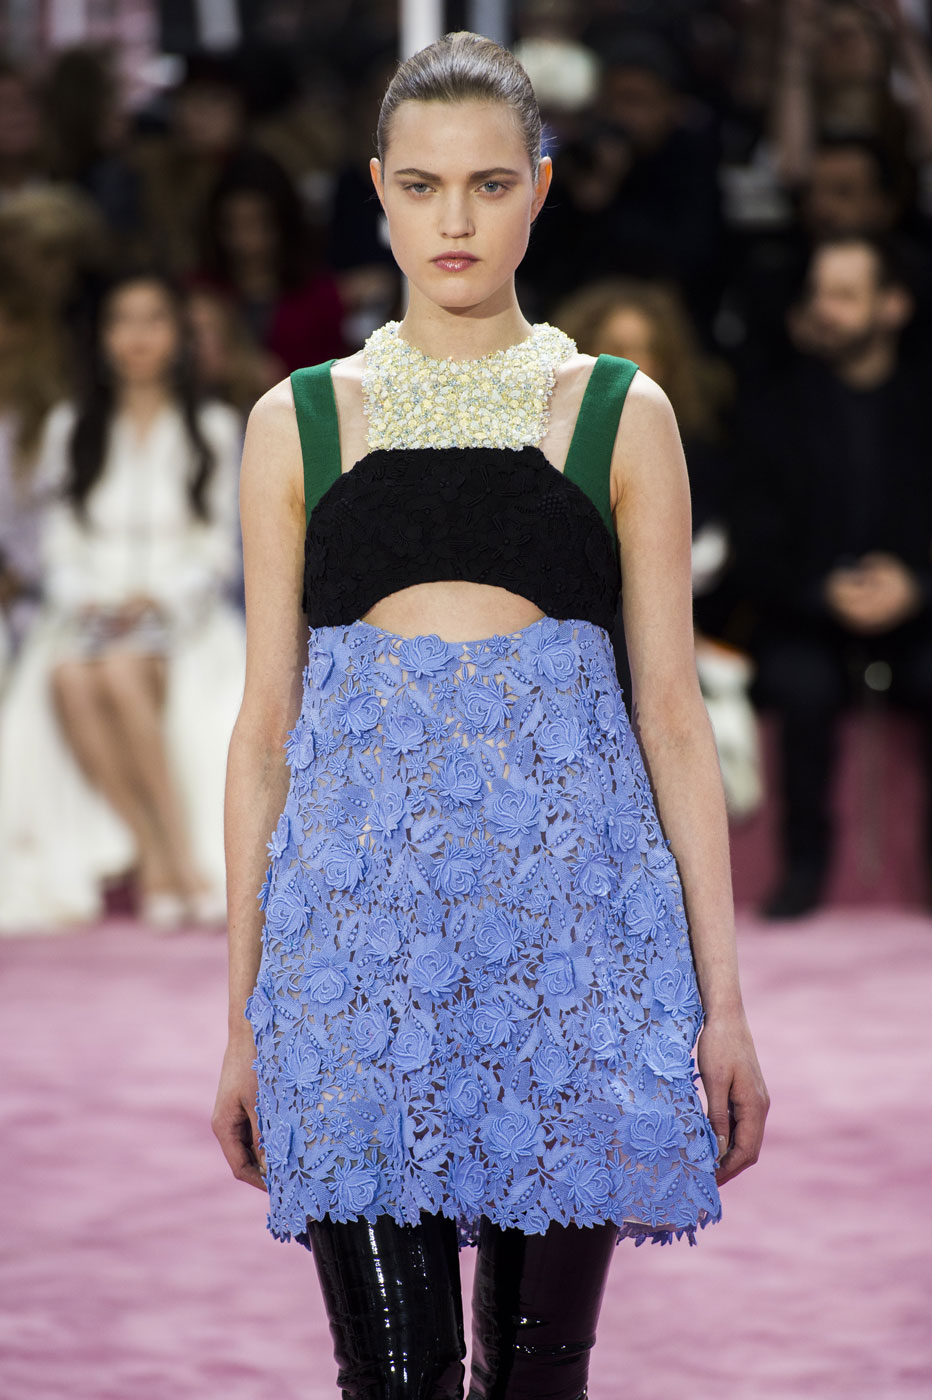 Christian-Dior-fashion-runway-show-haute-couture-paris-spring-summer-2015-the-impression-046